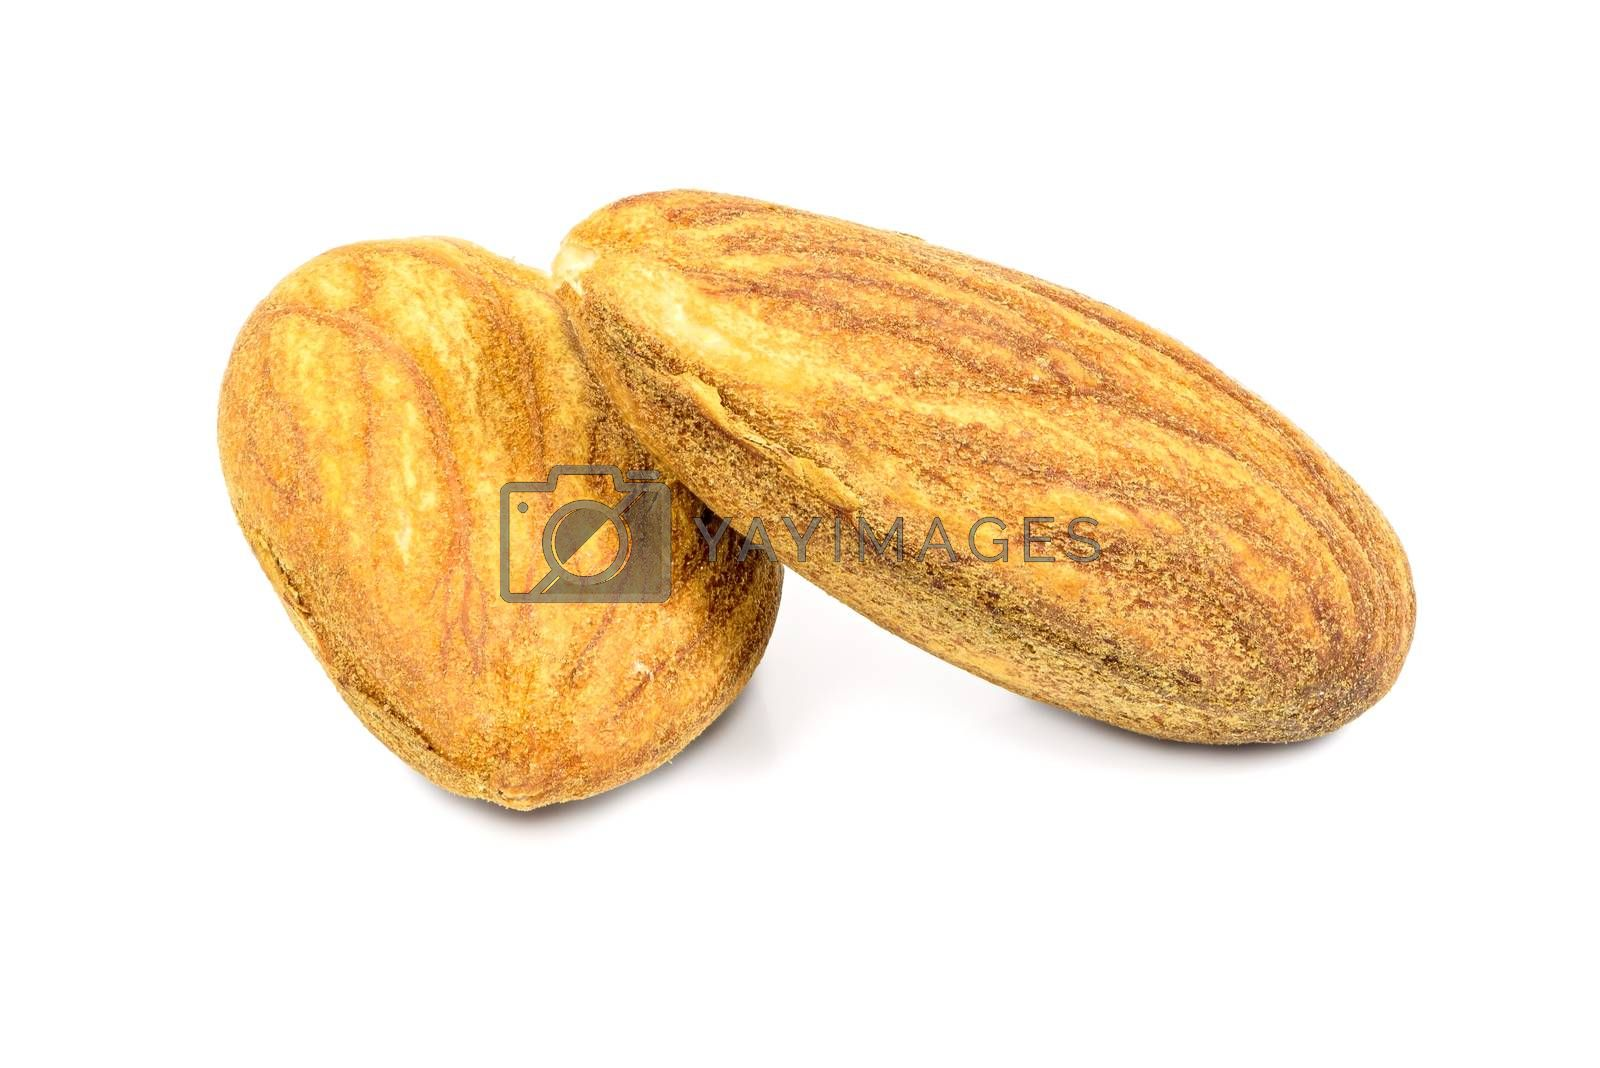 Royalty free image of Almond nuts on white background by mkos83